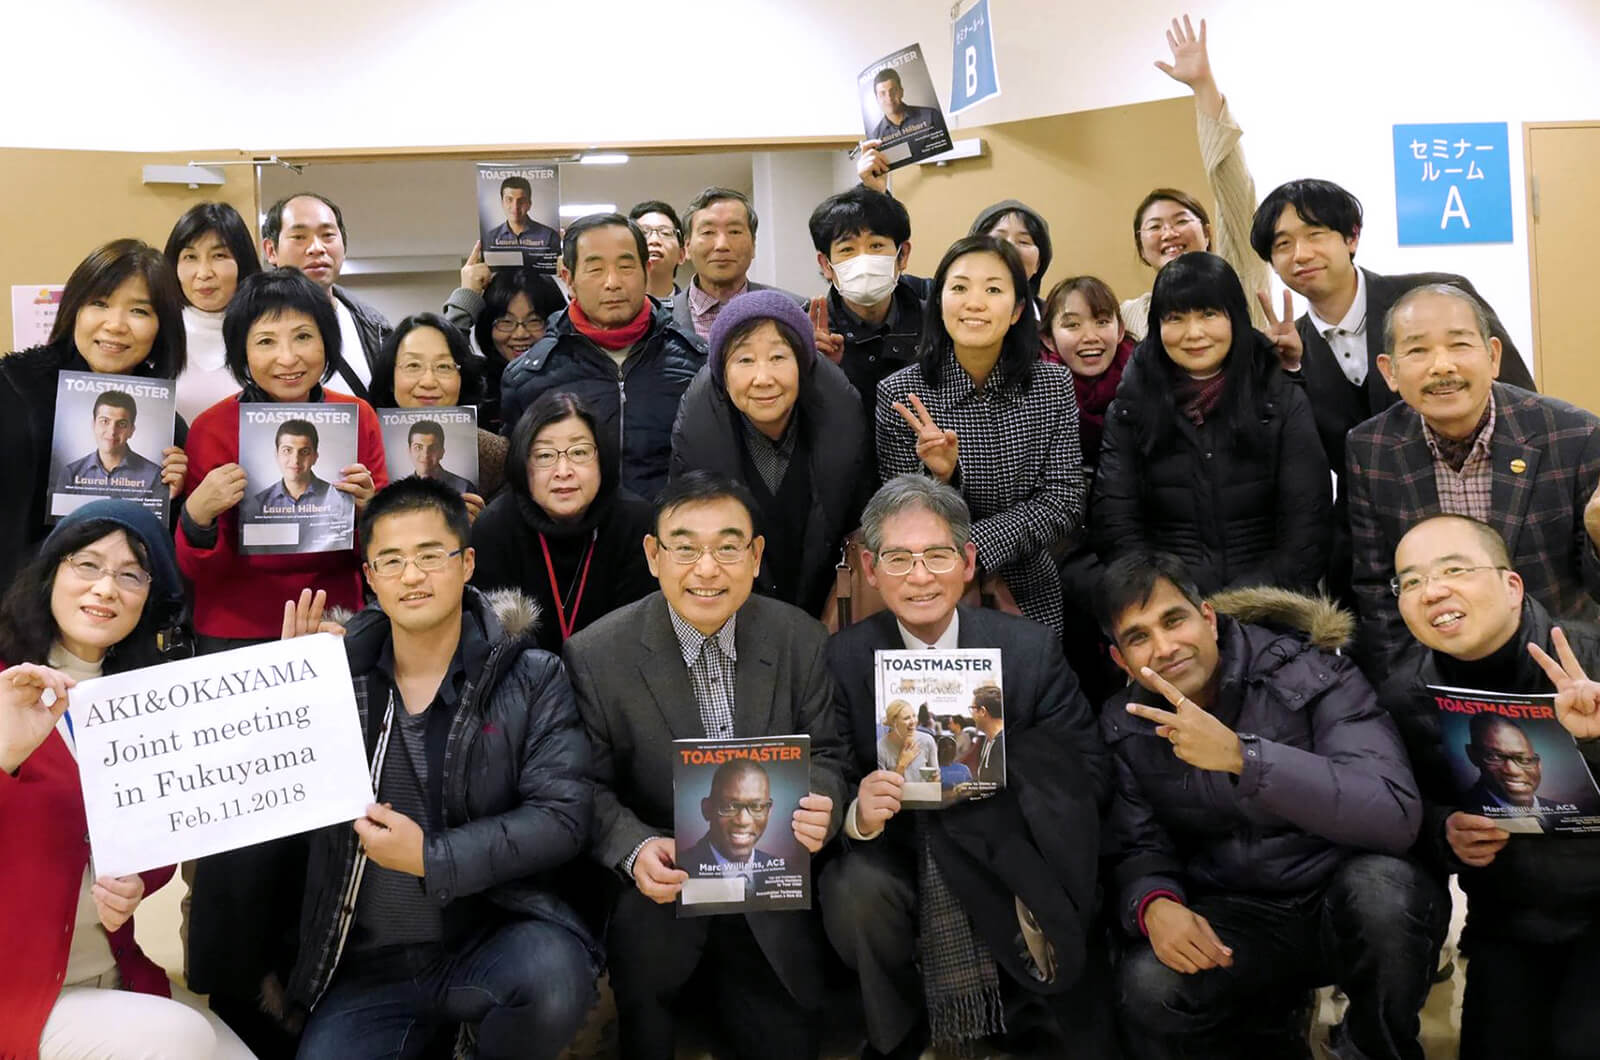 Located in cities 100 miles apart, the Okayama and Aki Toastmasters clubs came together in Fukuyama, Japan, for a joint meeting.